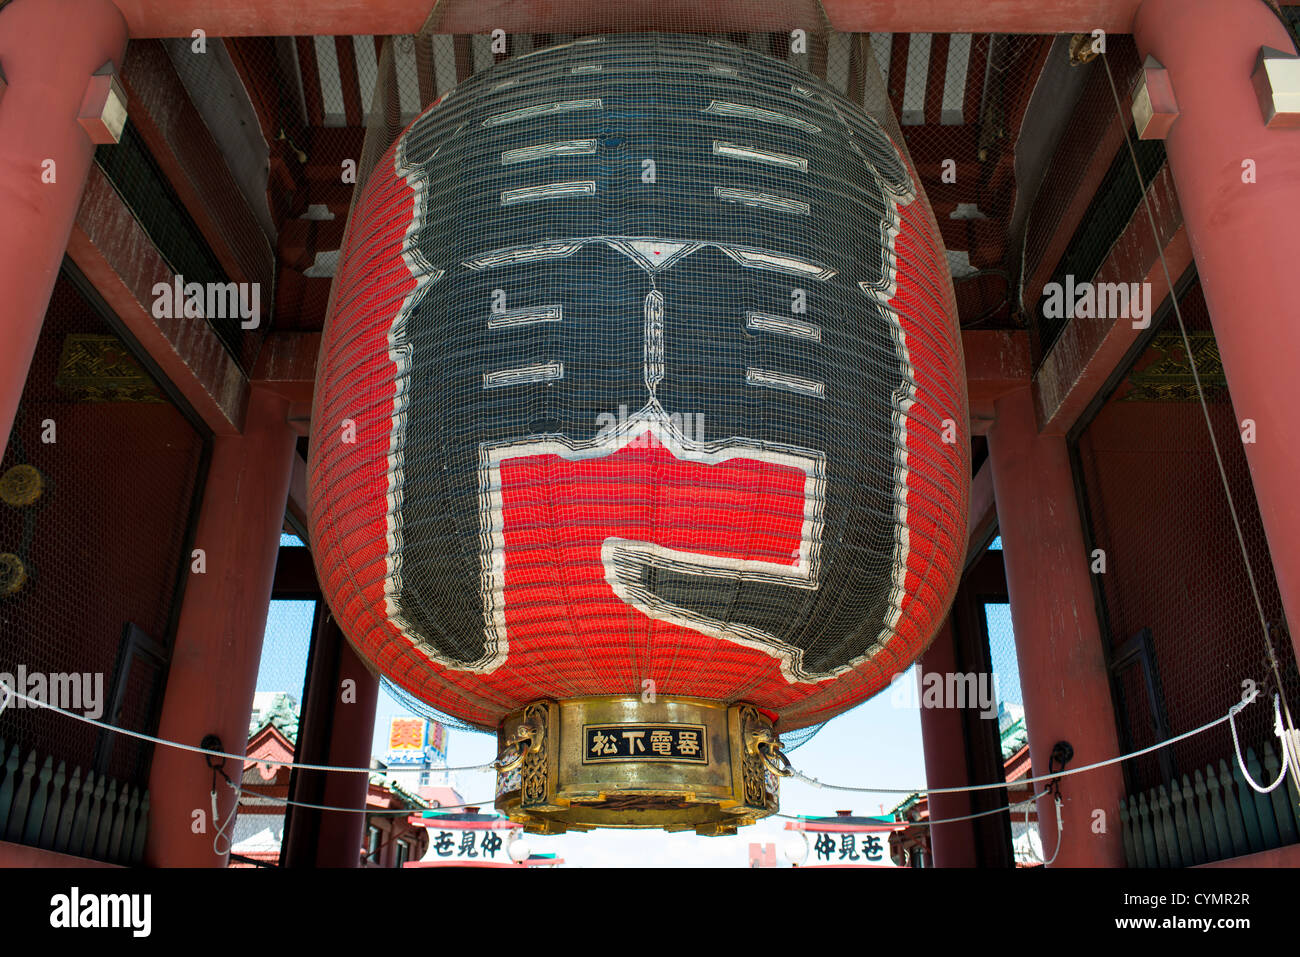 Close-up of lantern at Sensoji Temple, Asakusa, Tokyo, Japan - Stock Image